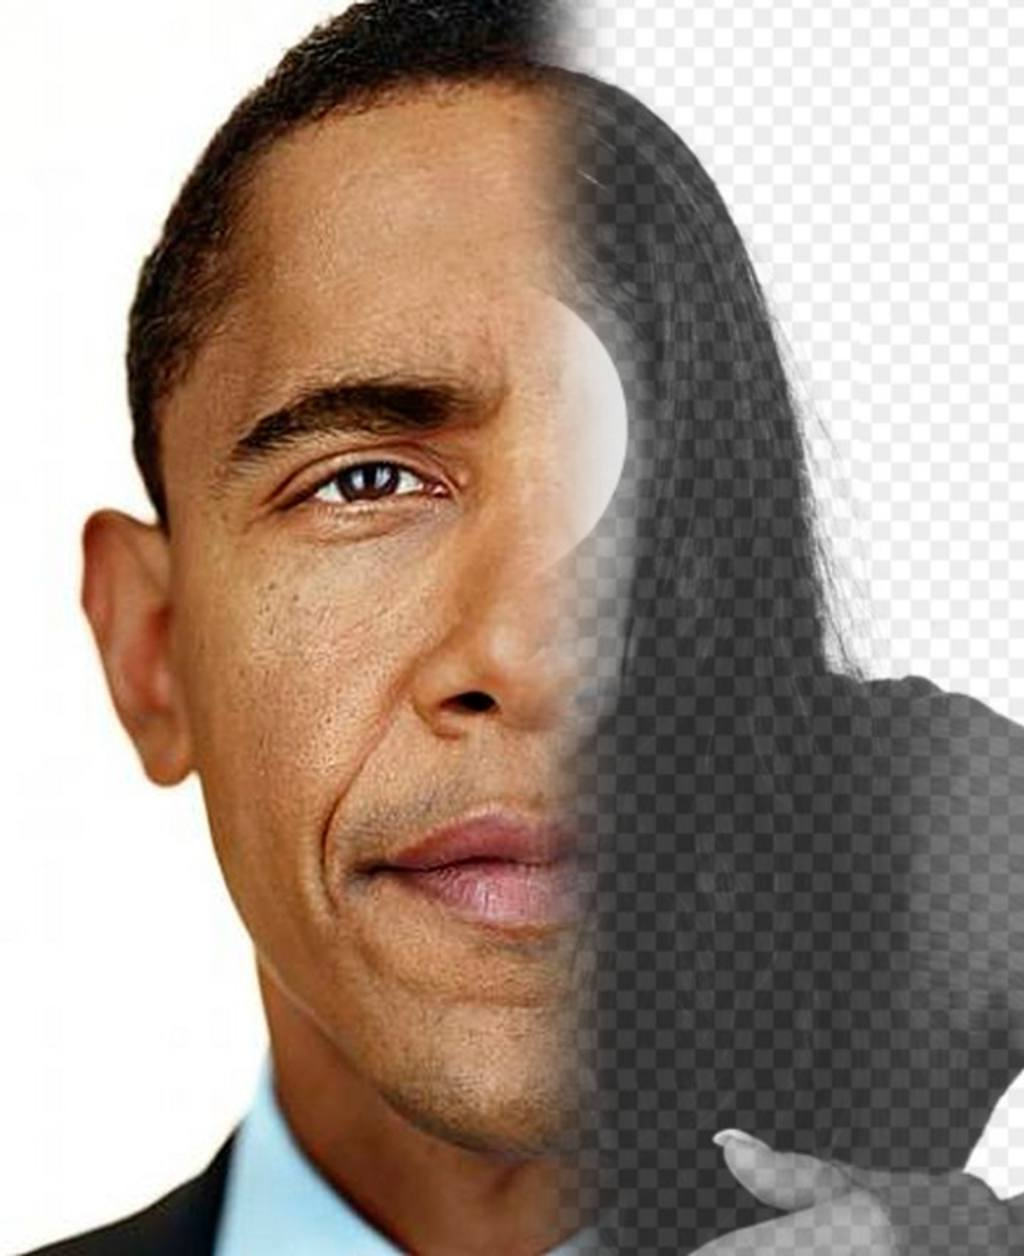 Create a photomontage with the face of President Obama mixed with half your face